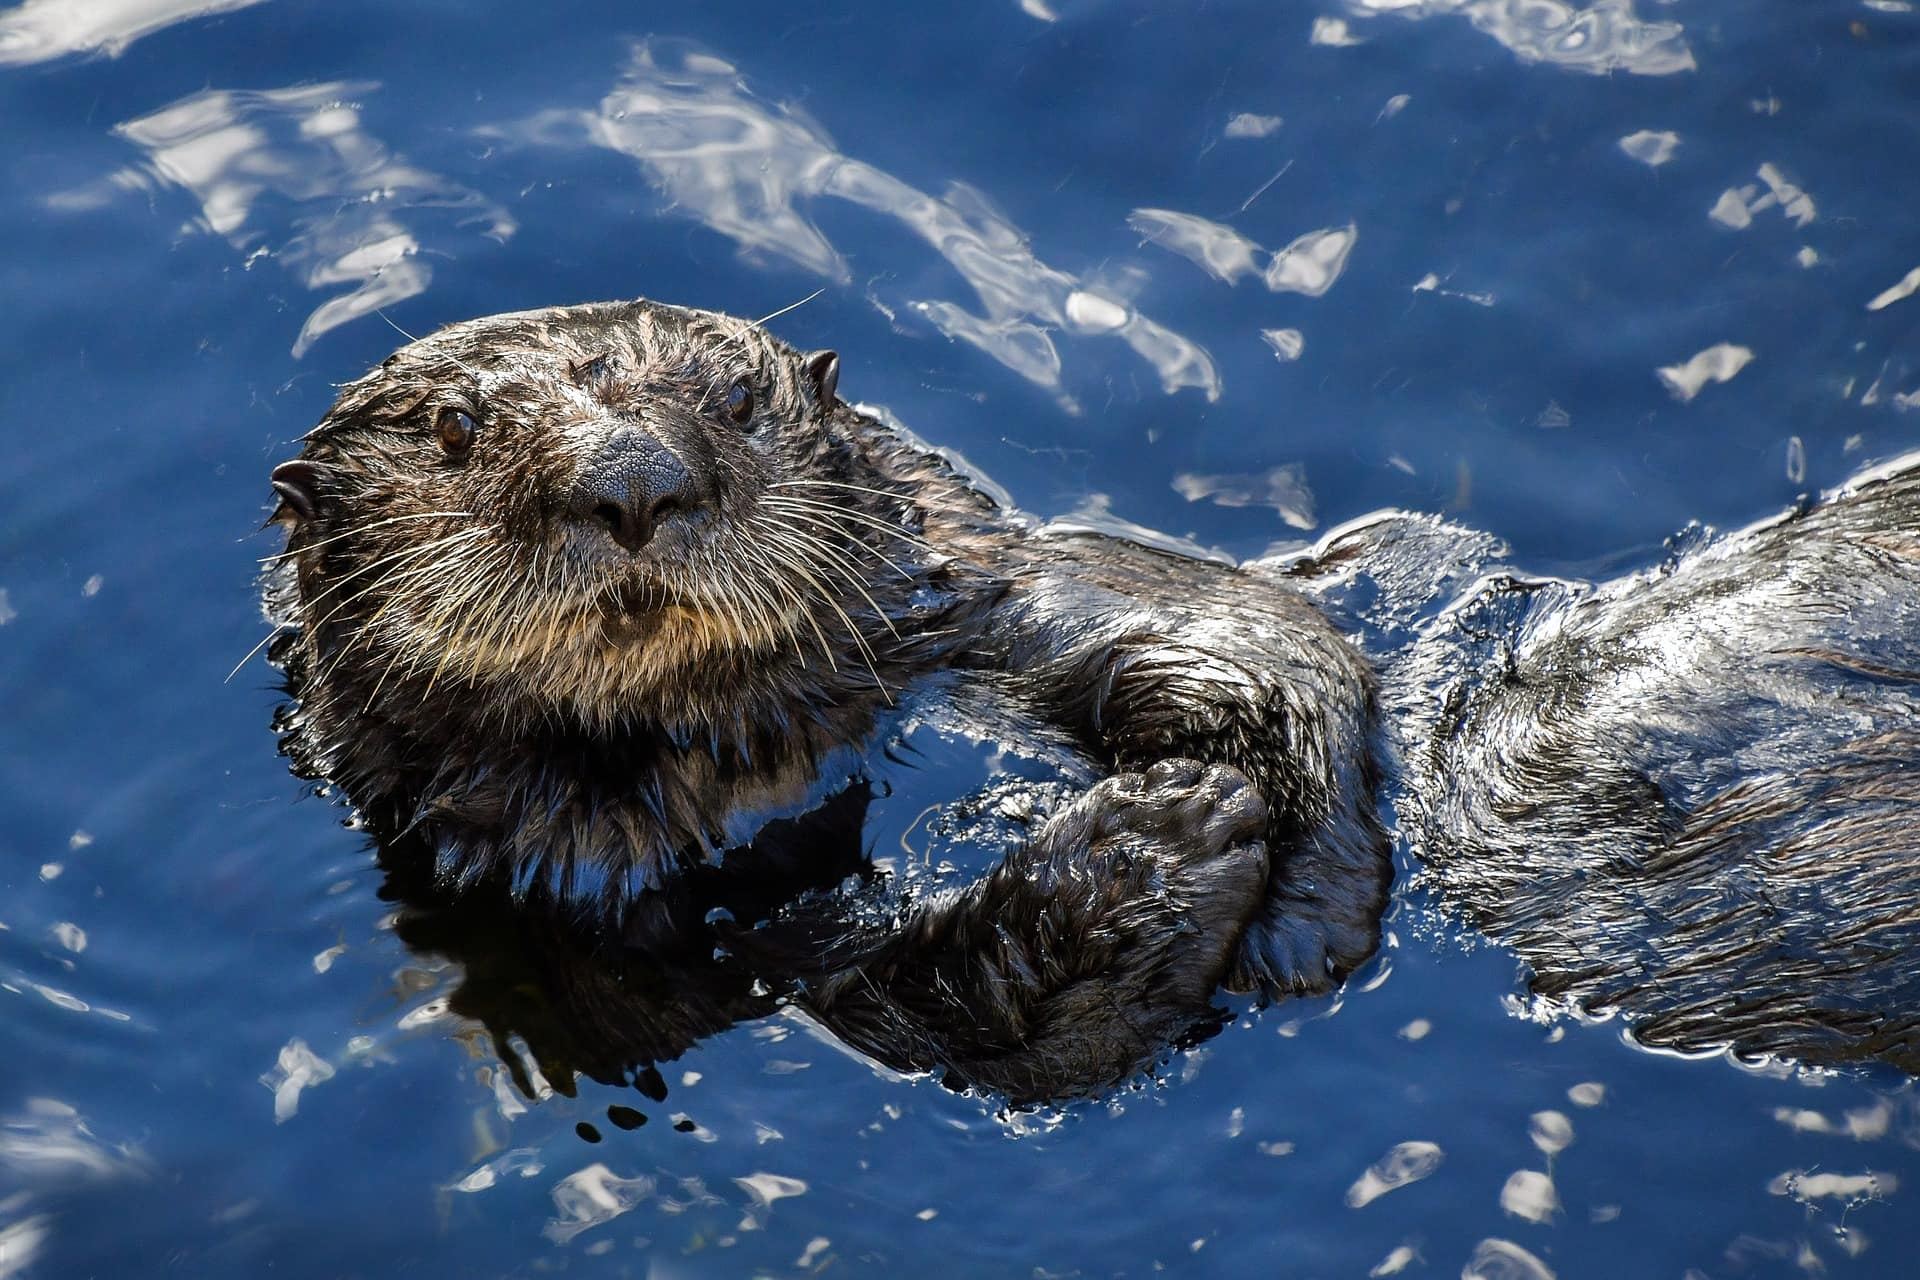 A sea otter floating on its back looking into the camera.